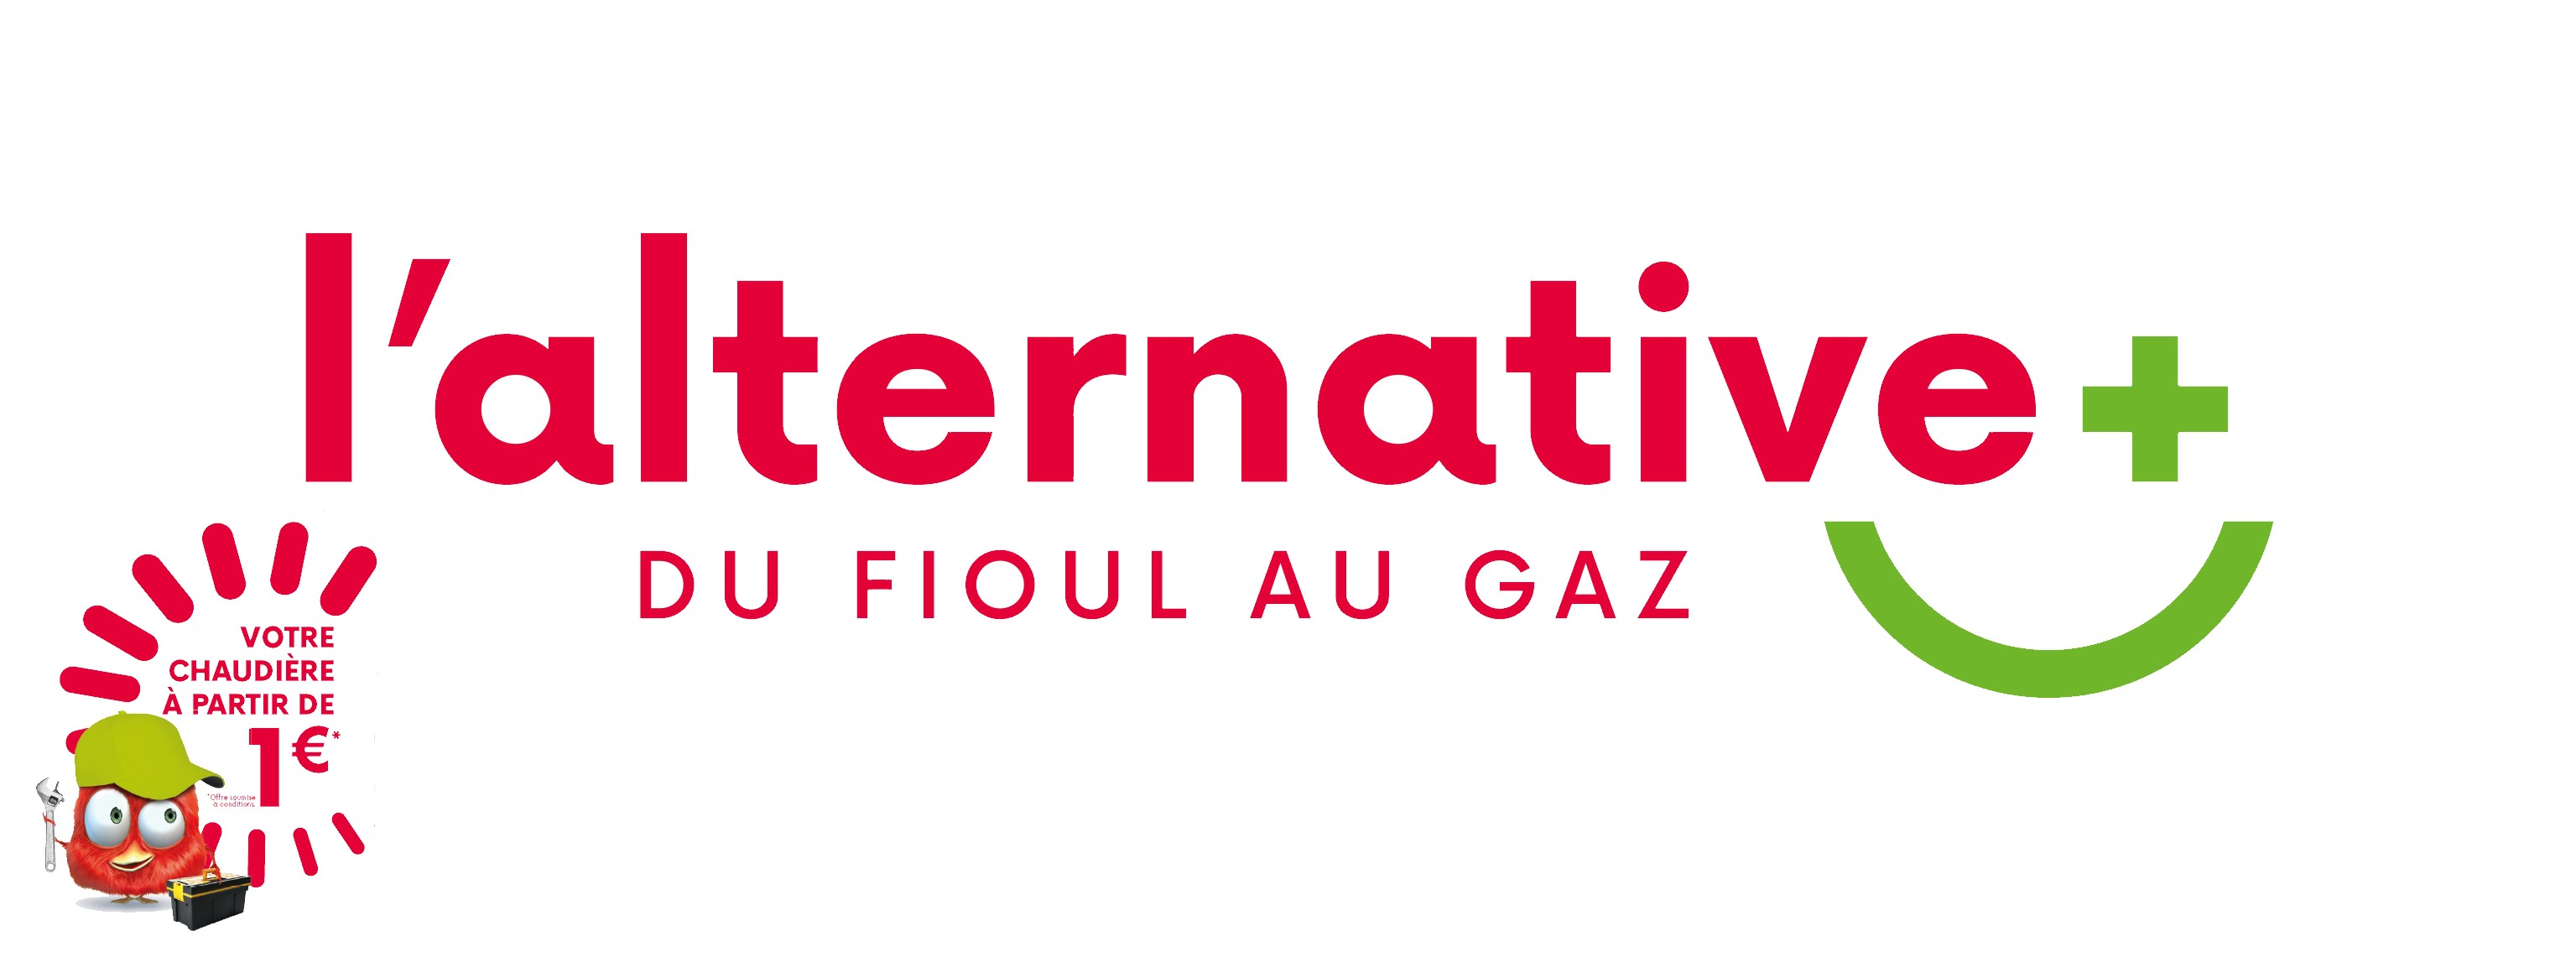 Alternative+ et Zag